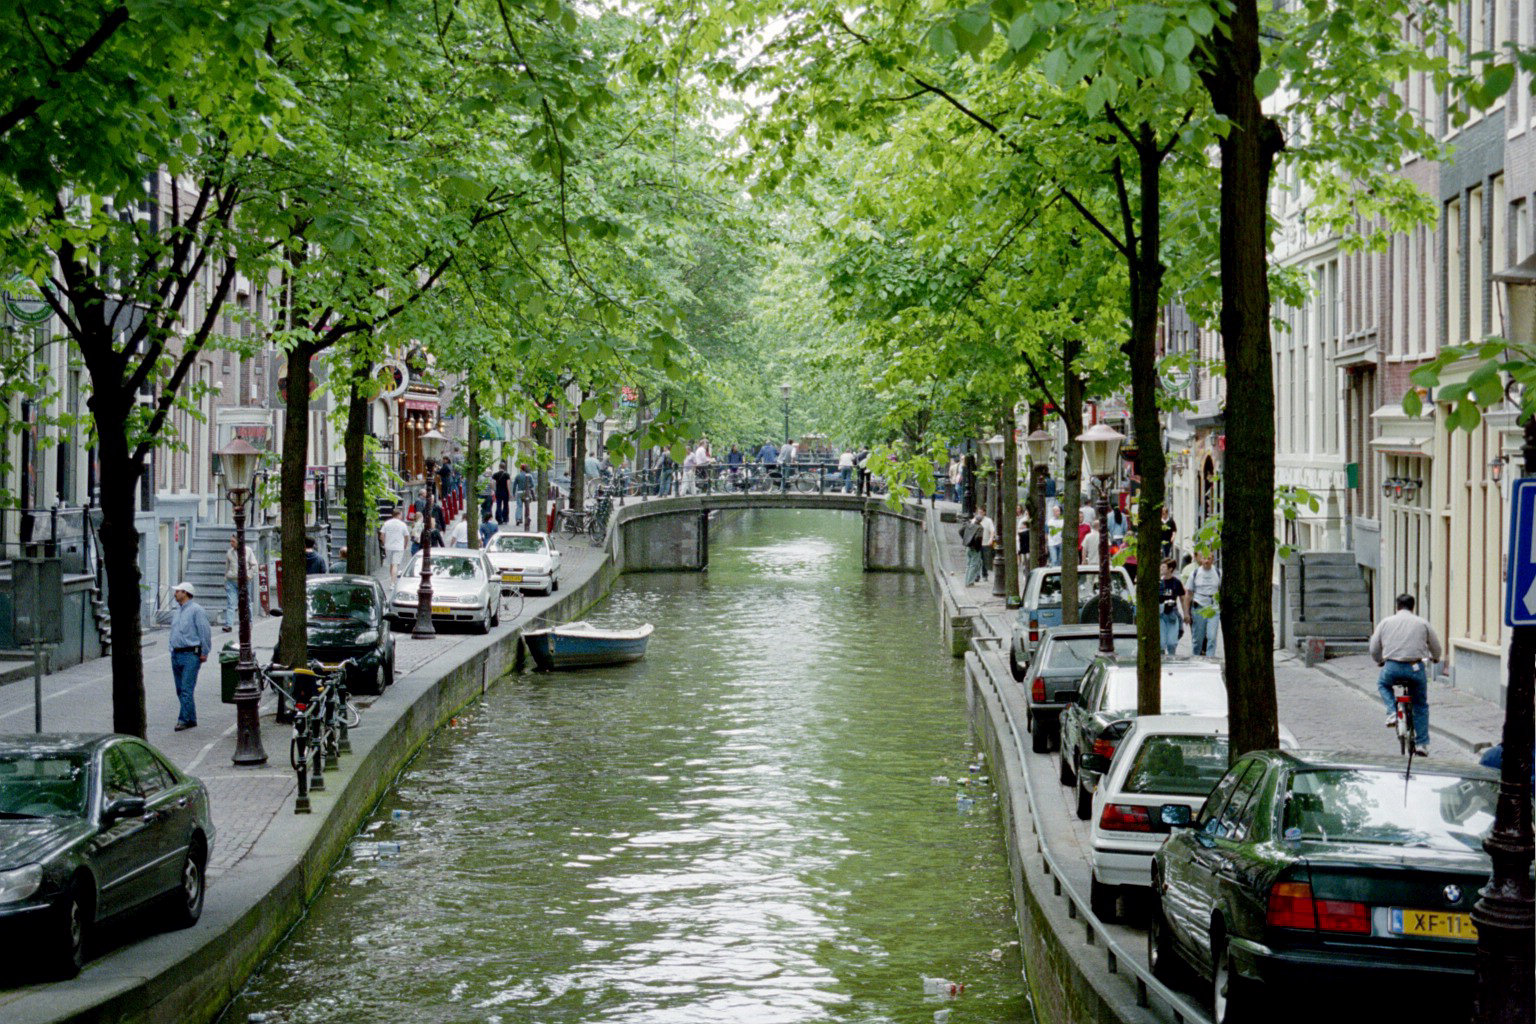 http://www.habitatapartments.com/resources/sections/amsterdam_canals.jpg